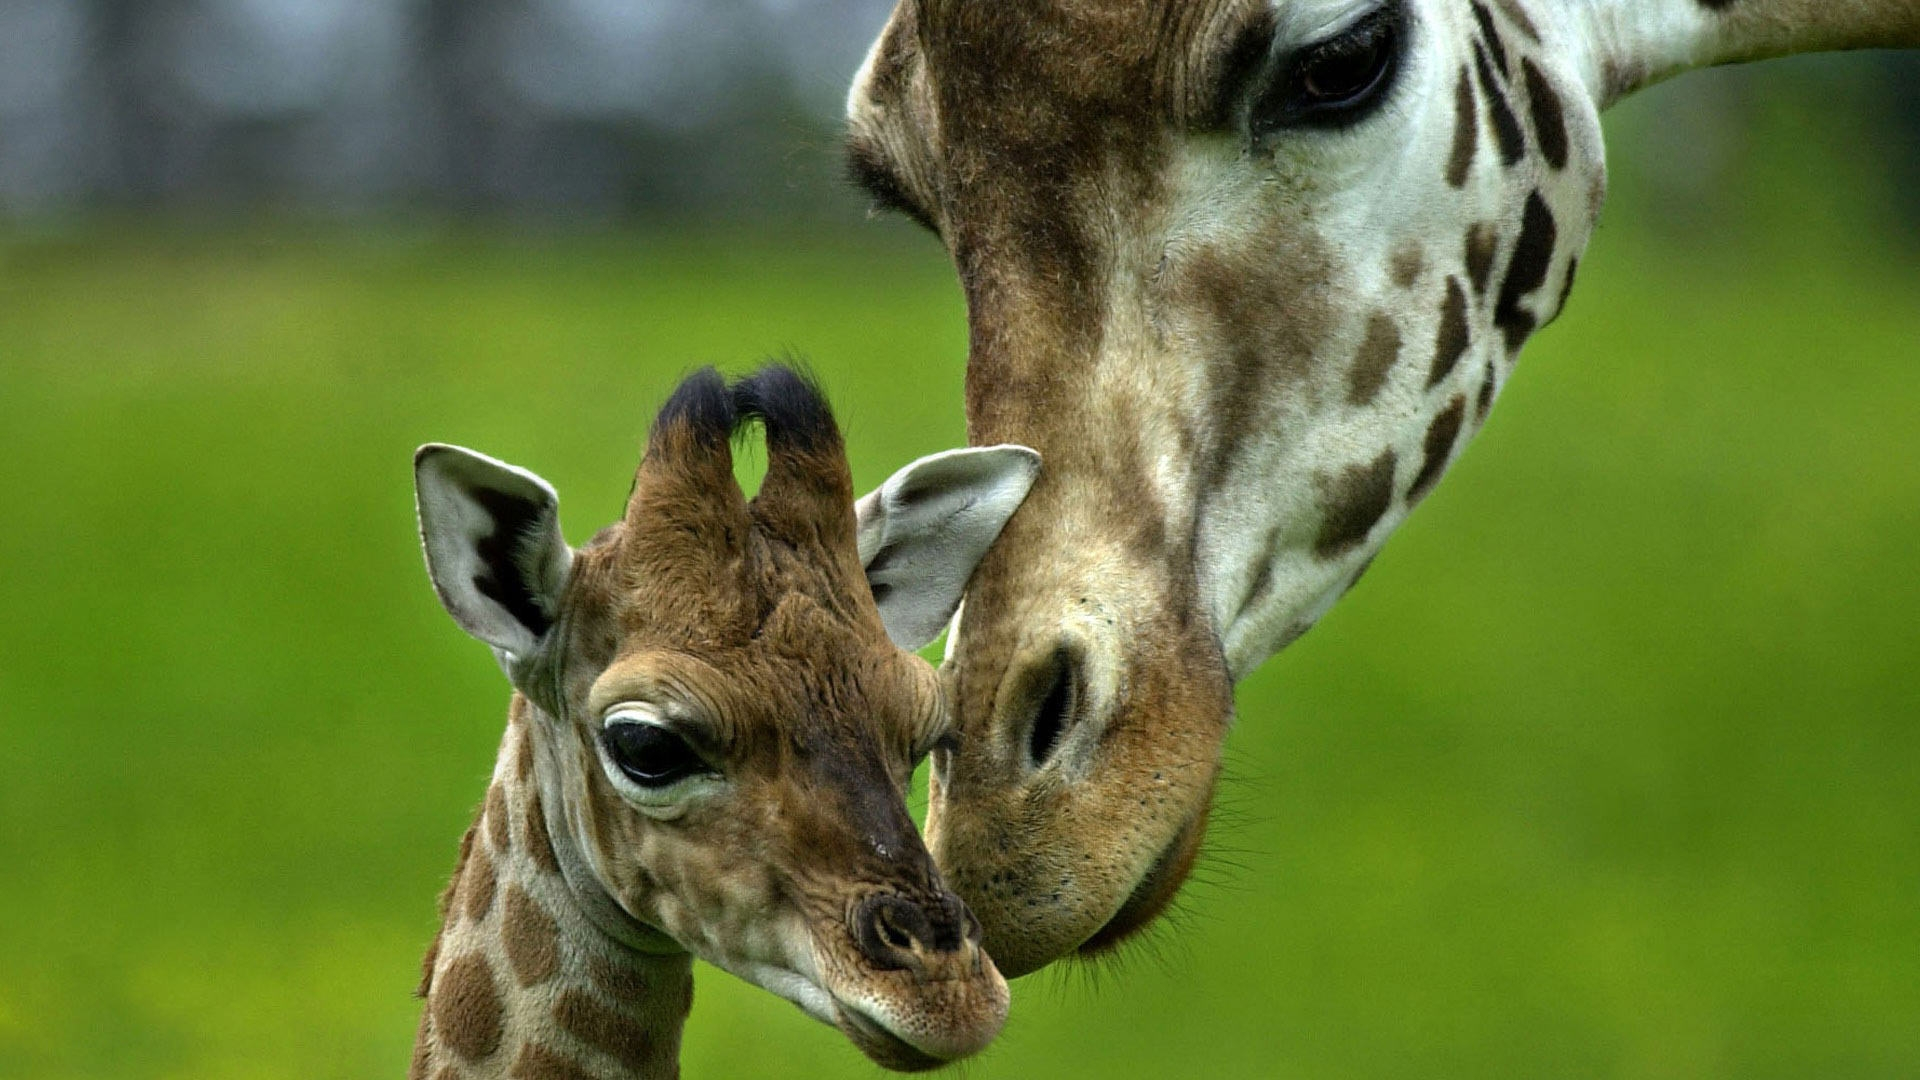 Giraffe with Baby Wallpaper